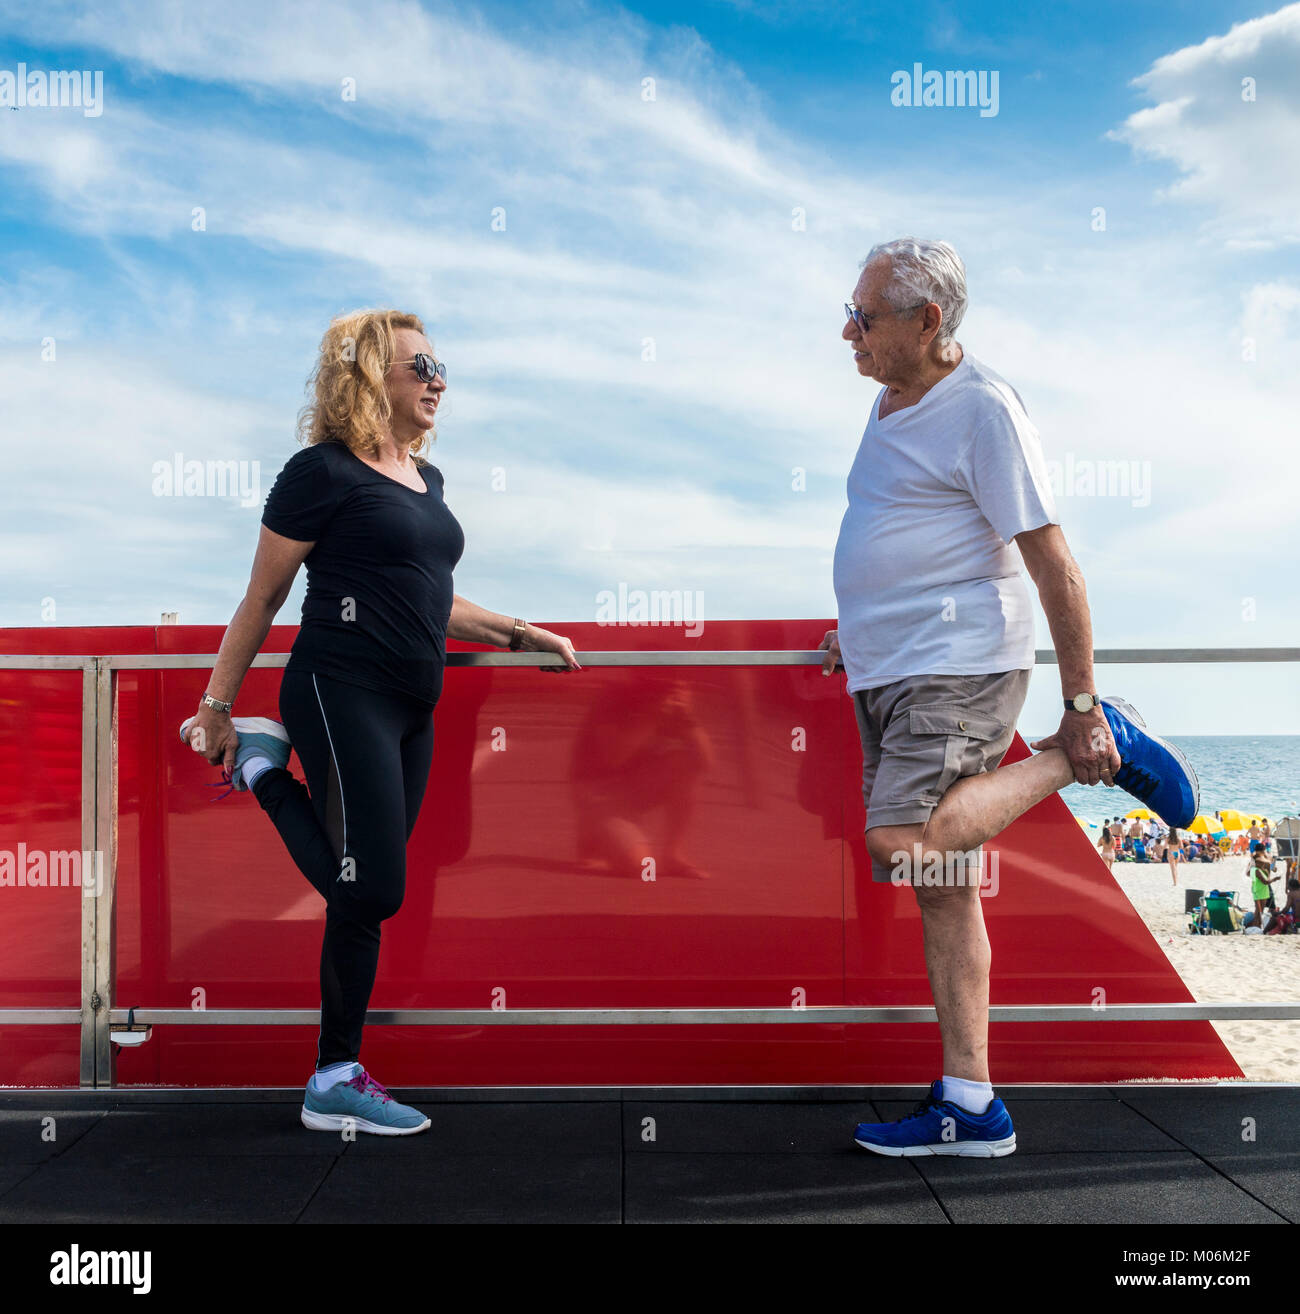 Model Released - Mature heterosexual couple stretching quadriceps on beach-side gym - Stock Image